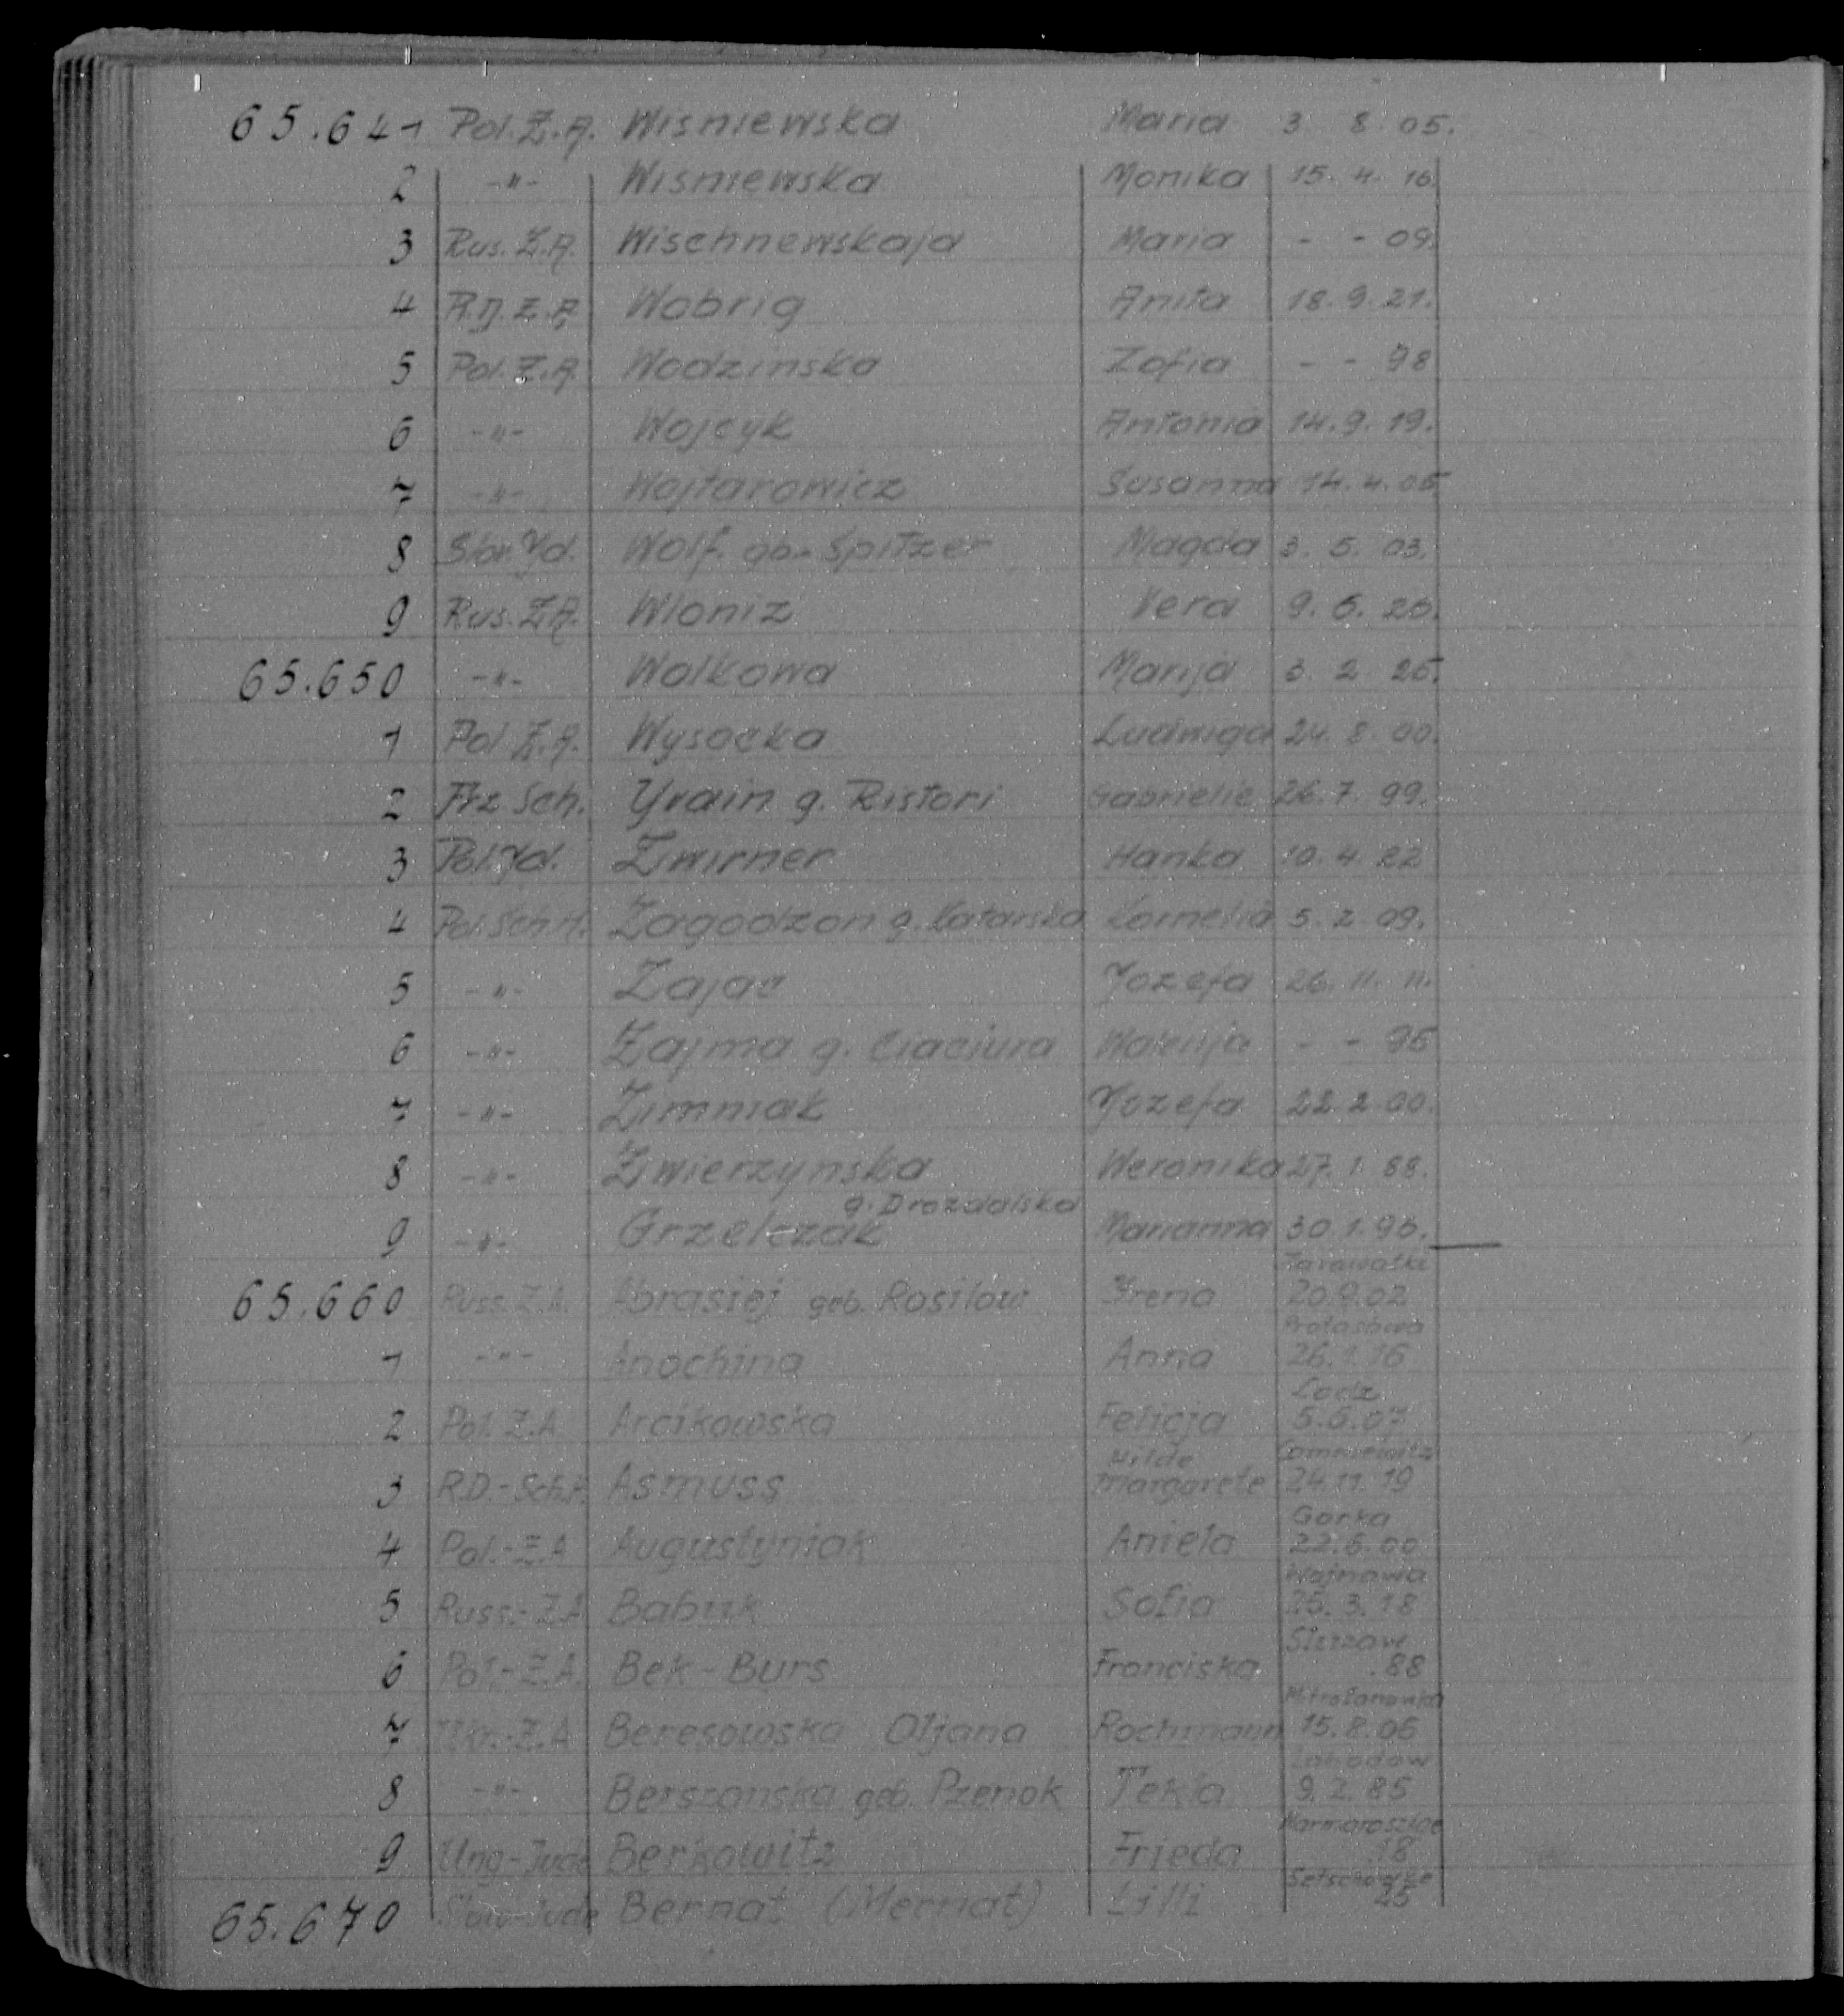 Lists of Inmates - Women (Book No. 8, page 194)